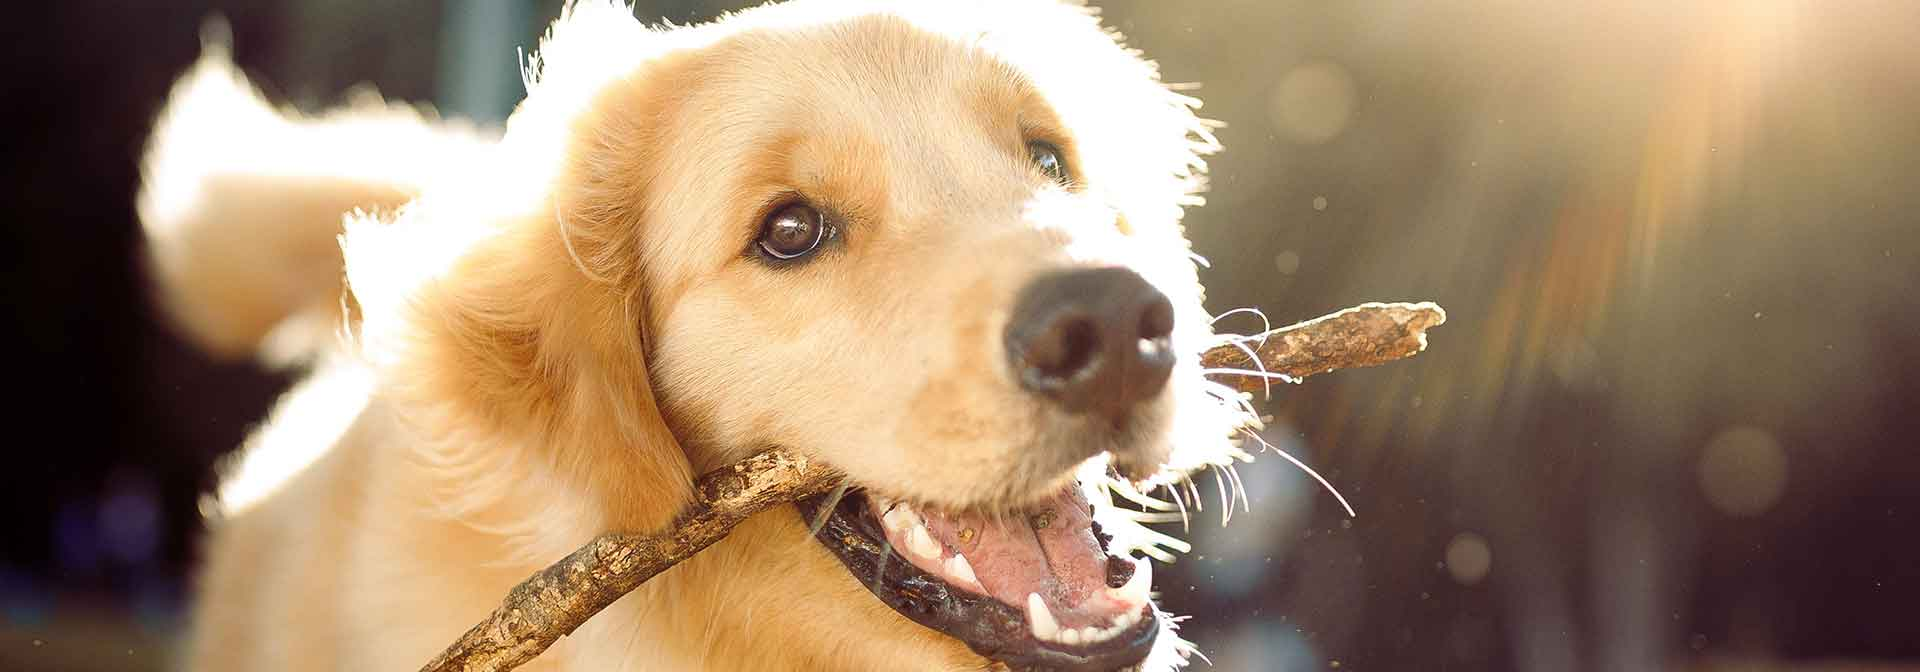 Animal Boarding And Grooming of Farmers Branch golden stick in mouth slide background